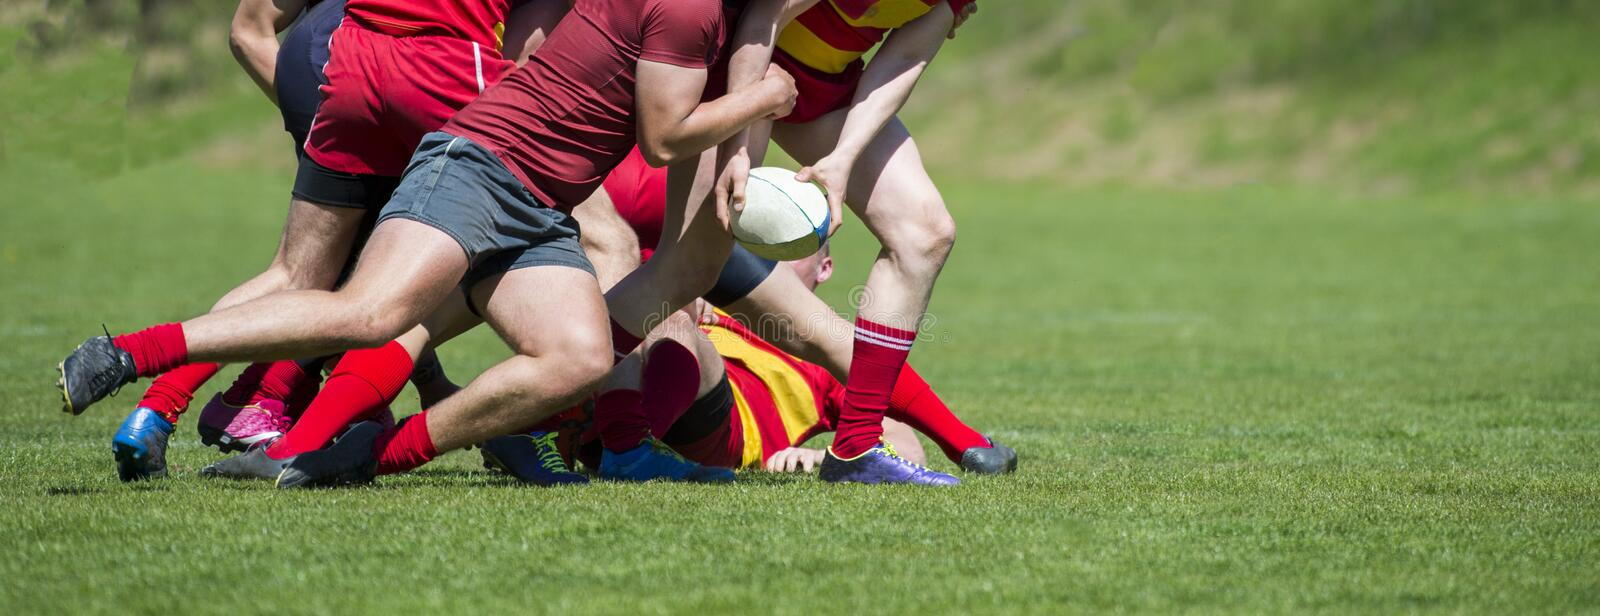 Rugby players fight for the ball on professional rugby stadium royalty free stock images